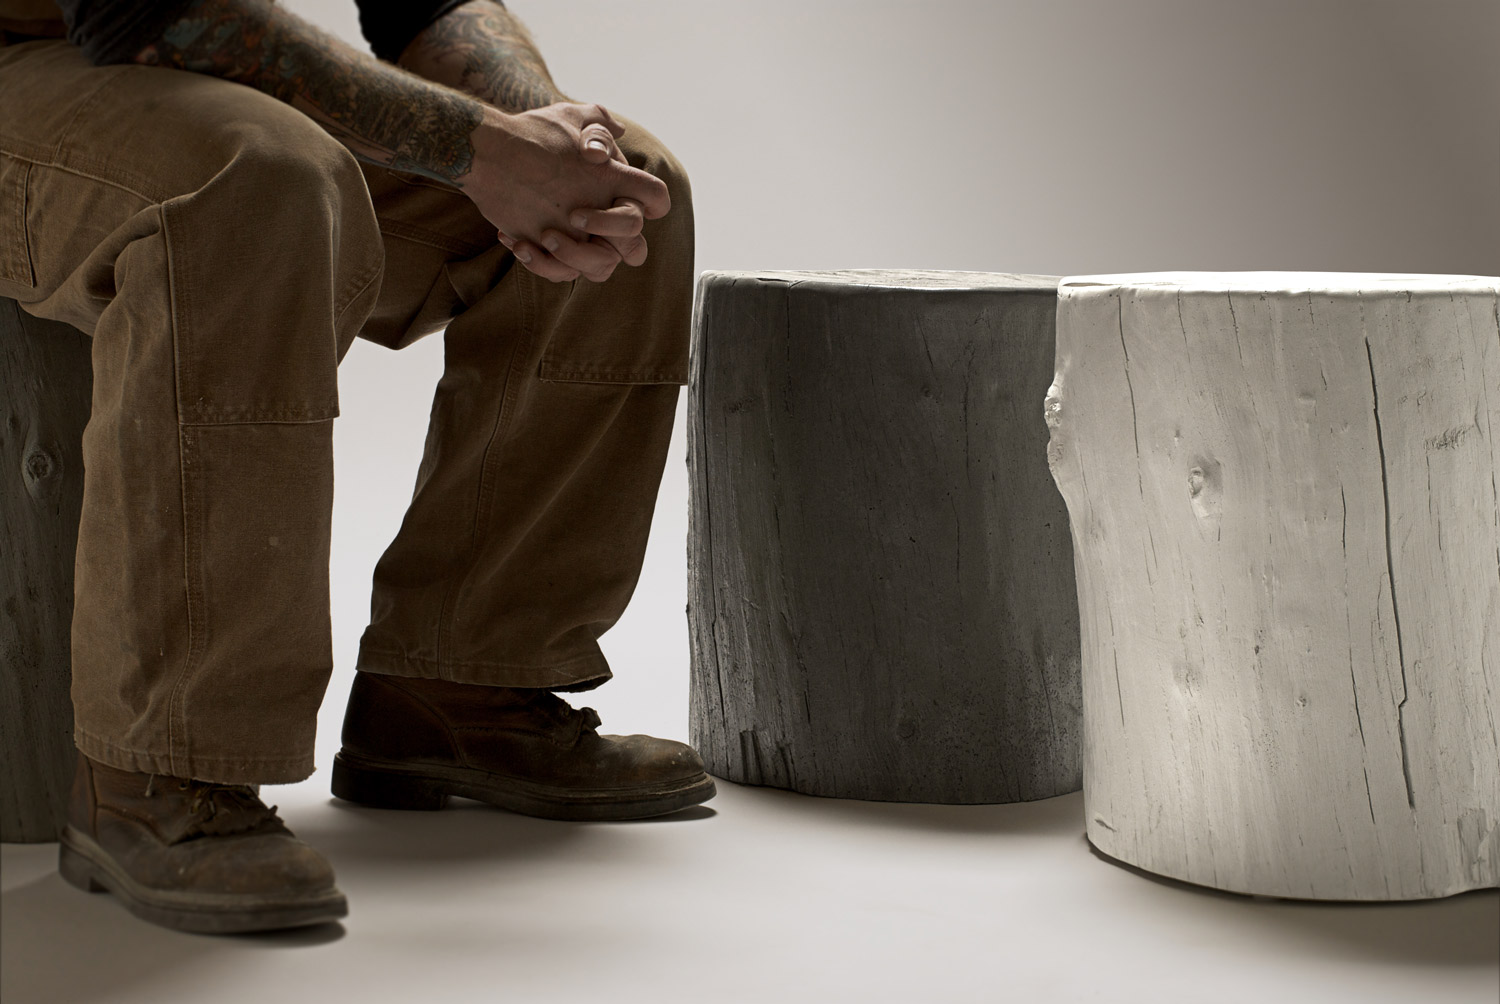 Concrete Knotty Tree Stump Stools make great seating or side tables